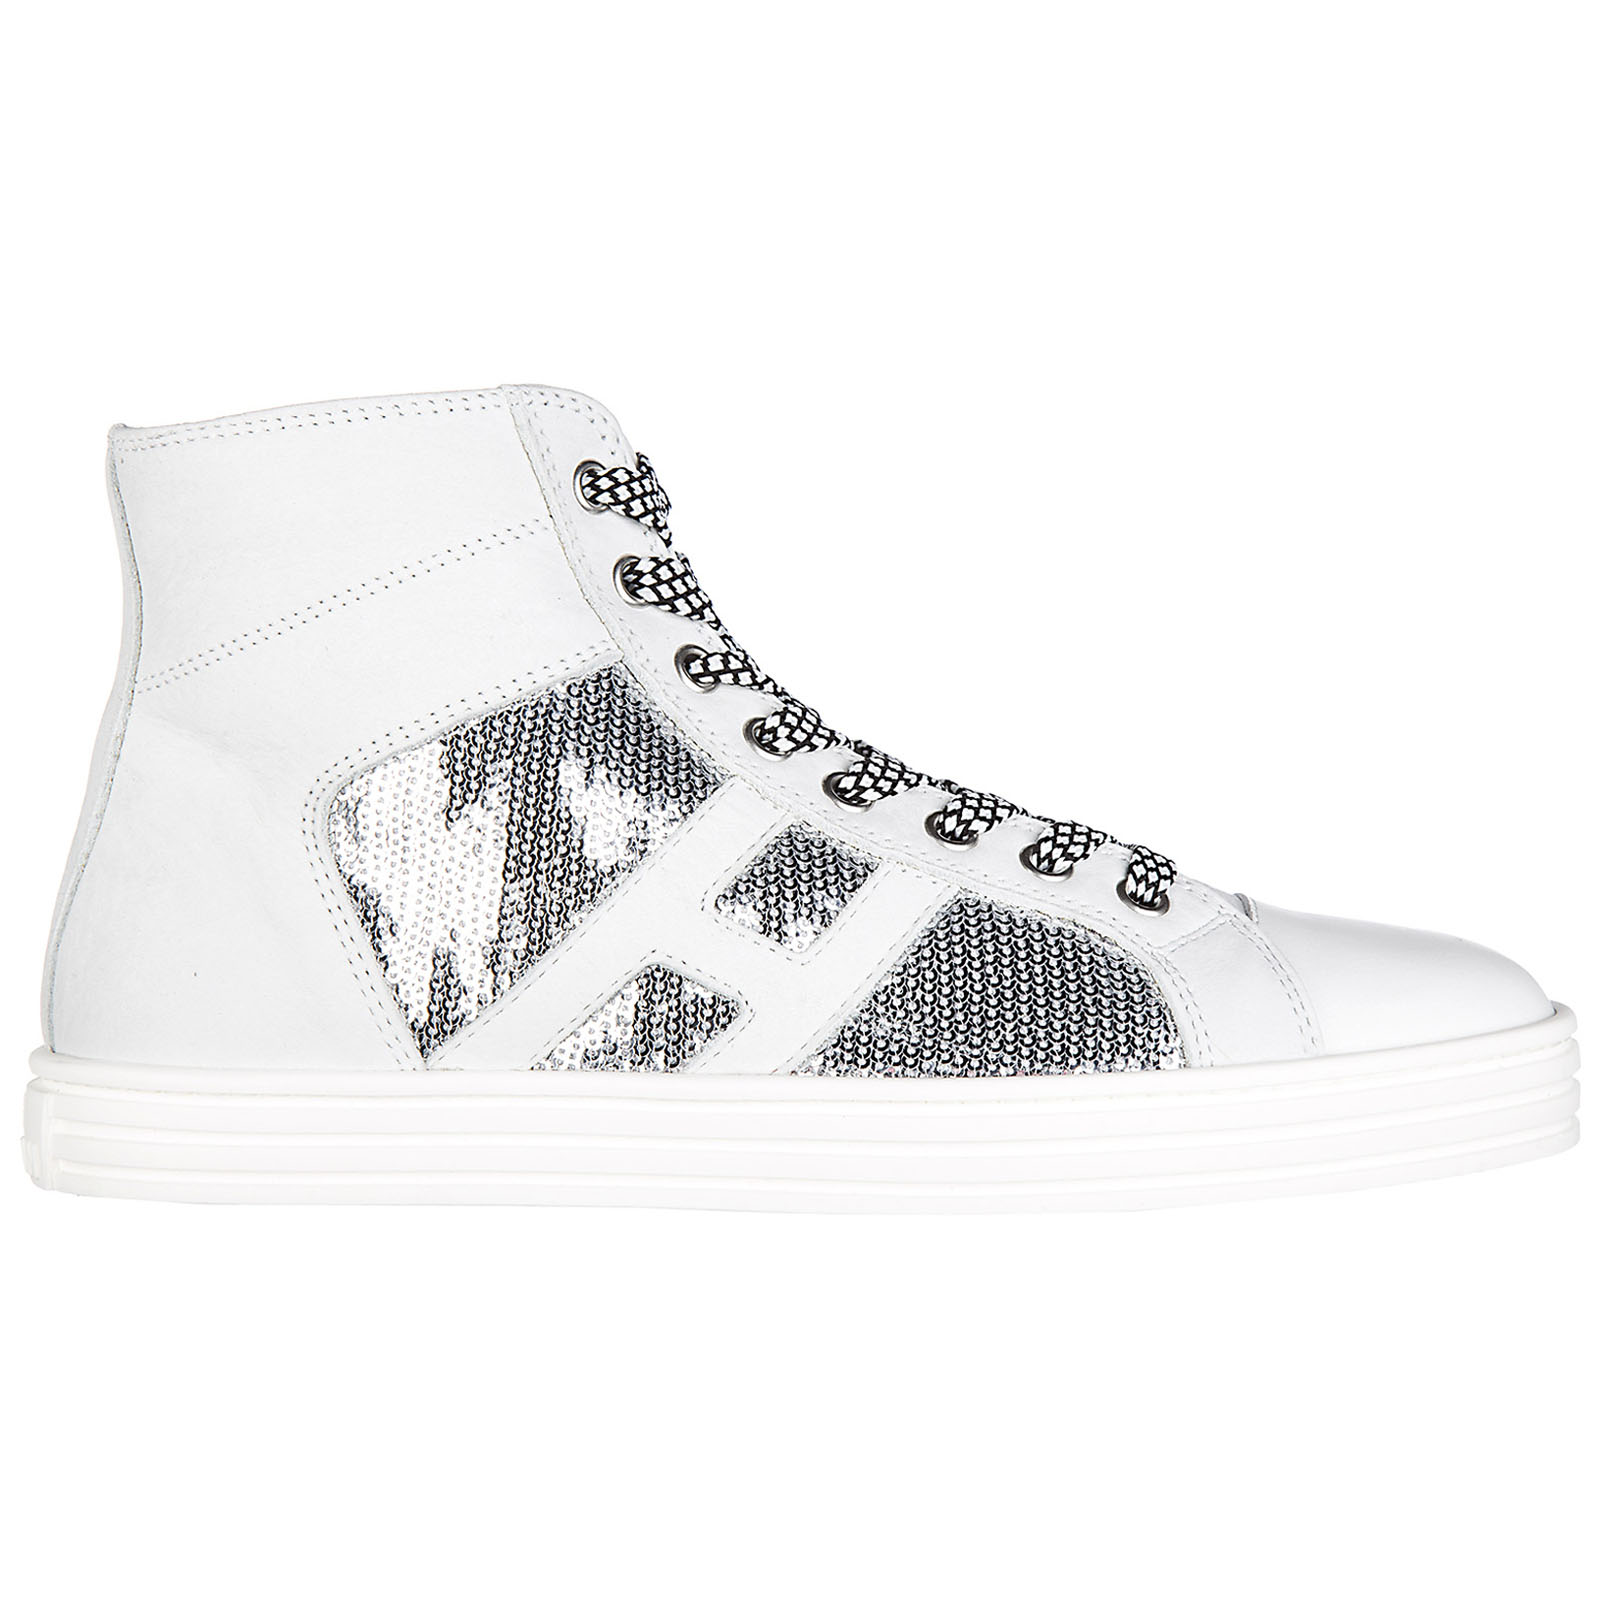 aaf4590db2f49 Hogan Rebel Women s shoes high top suede trainers sneakers r141 laterale  pailettes tessuto